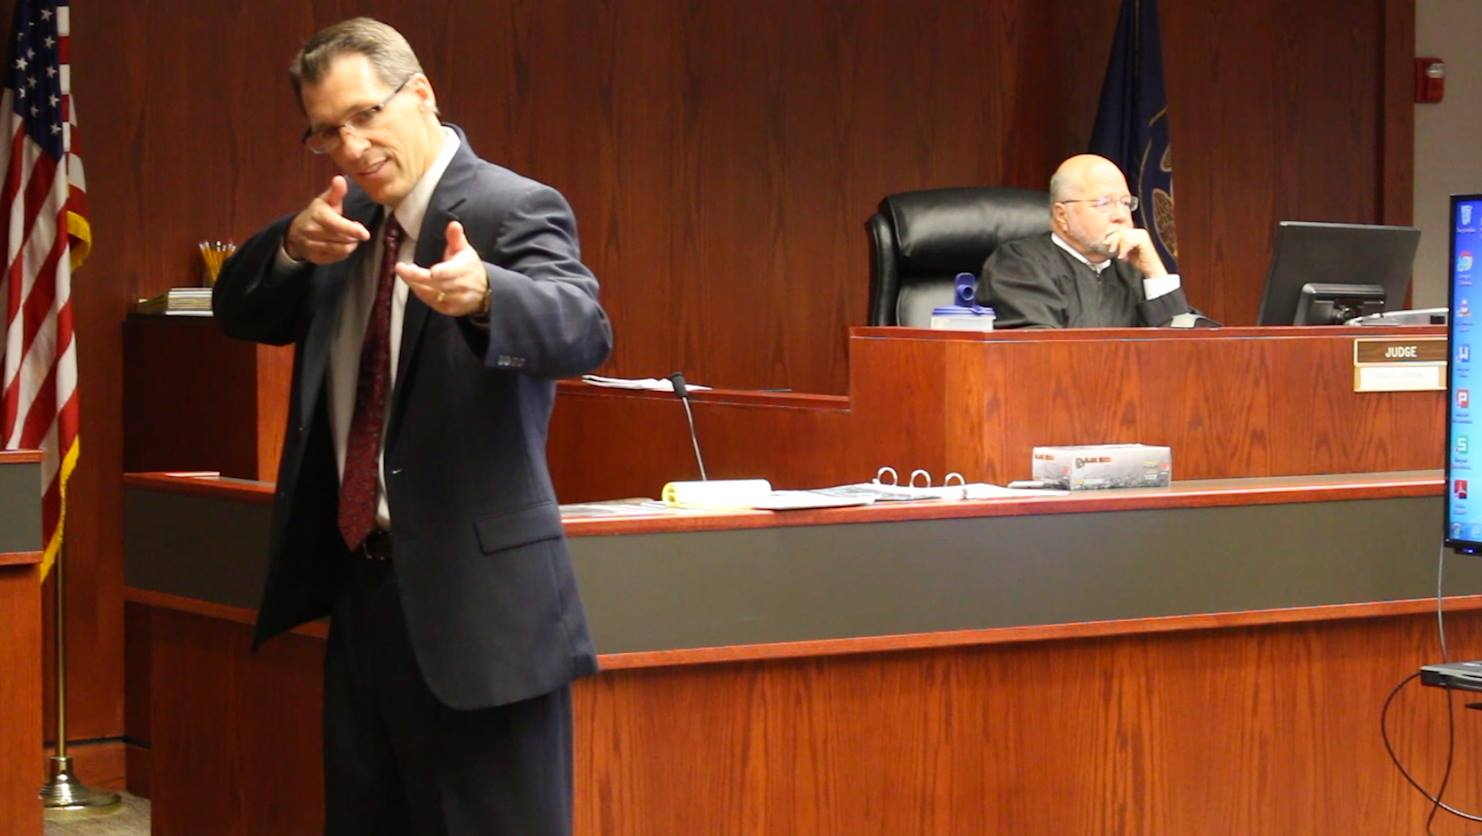 Iron County Attorney Scott Garrett describes for the jury how Grant Louis Biedermann aimed the gun at two deputies during his closing argument Wednesday in Cedar City, Utah, June 15, 2016 | Photo by Mike Cole | St. George/Cedar City News